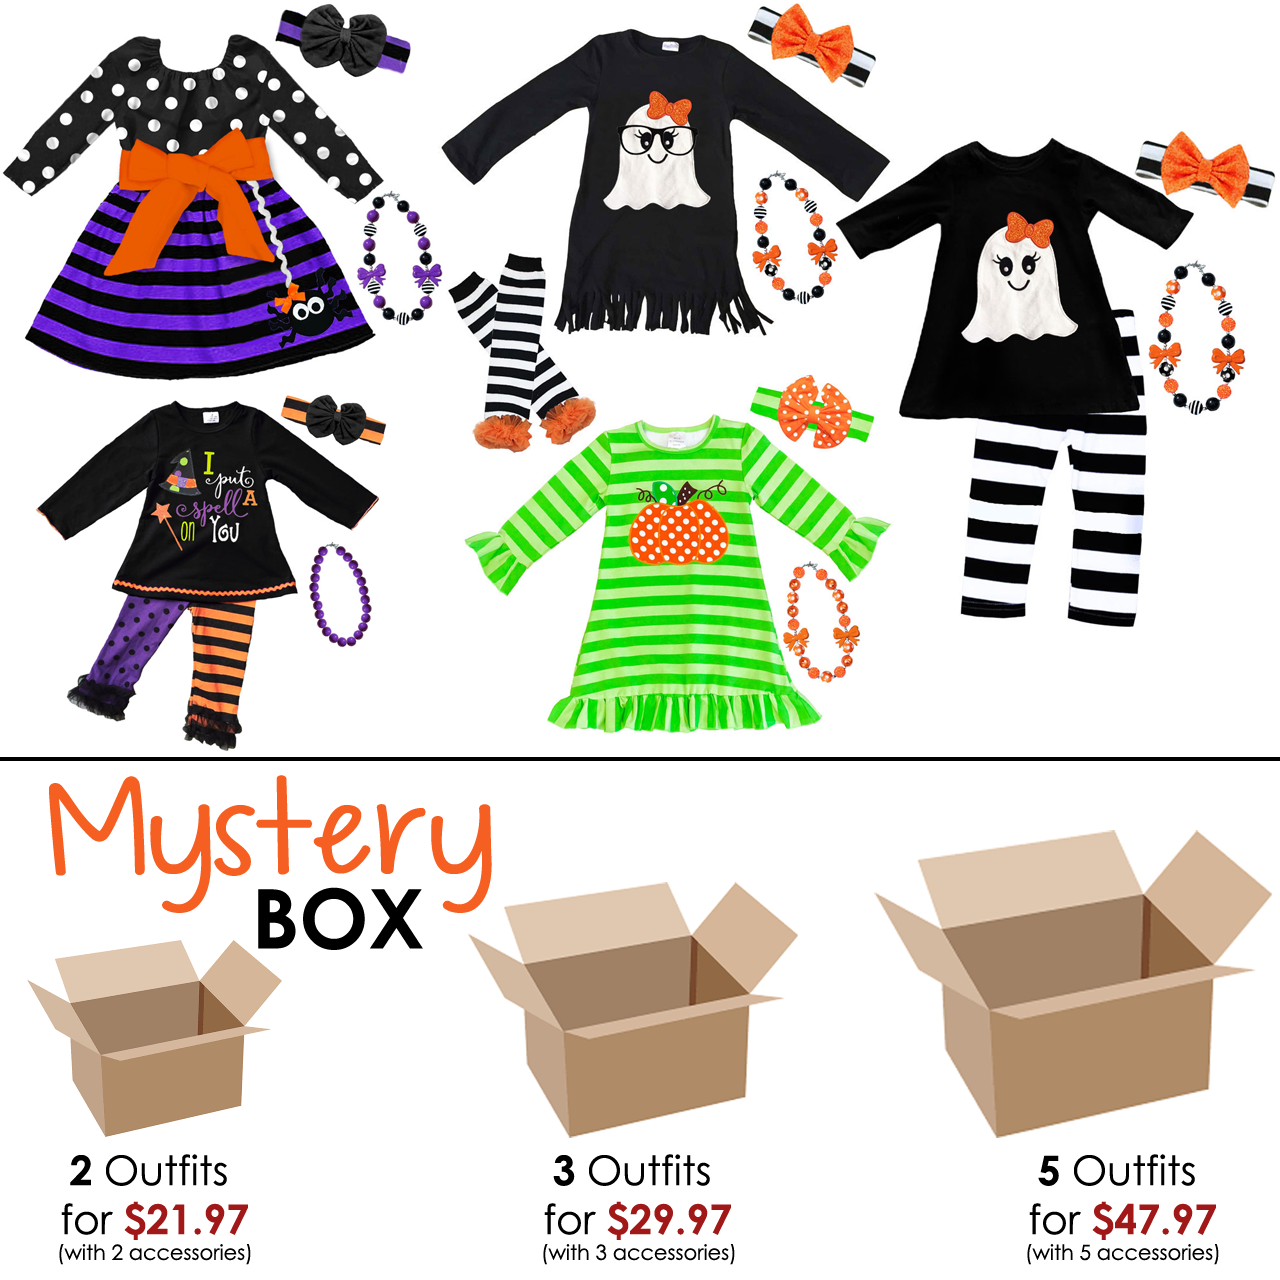 Monster Mystery Box Sale Choose From 2 3 Or 5 Outfits Dresses With 2 3 Or 5 Accessories And Save Up To 50 The Outfi Monster Squad Toddler Boutique Monster